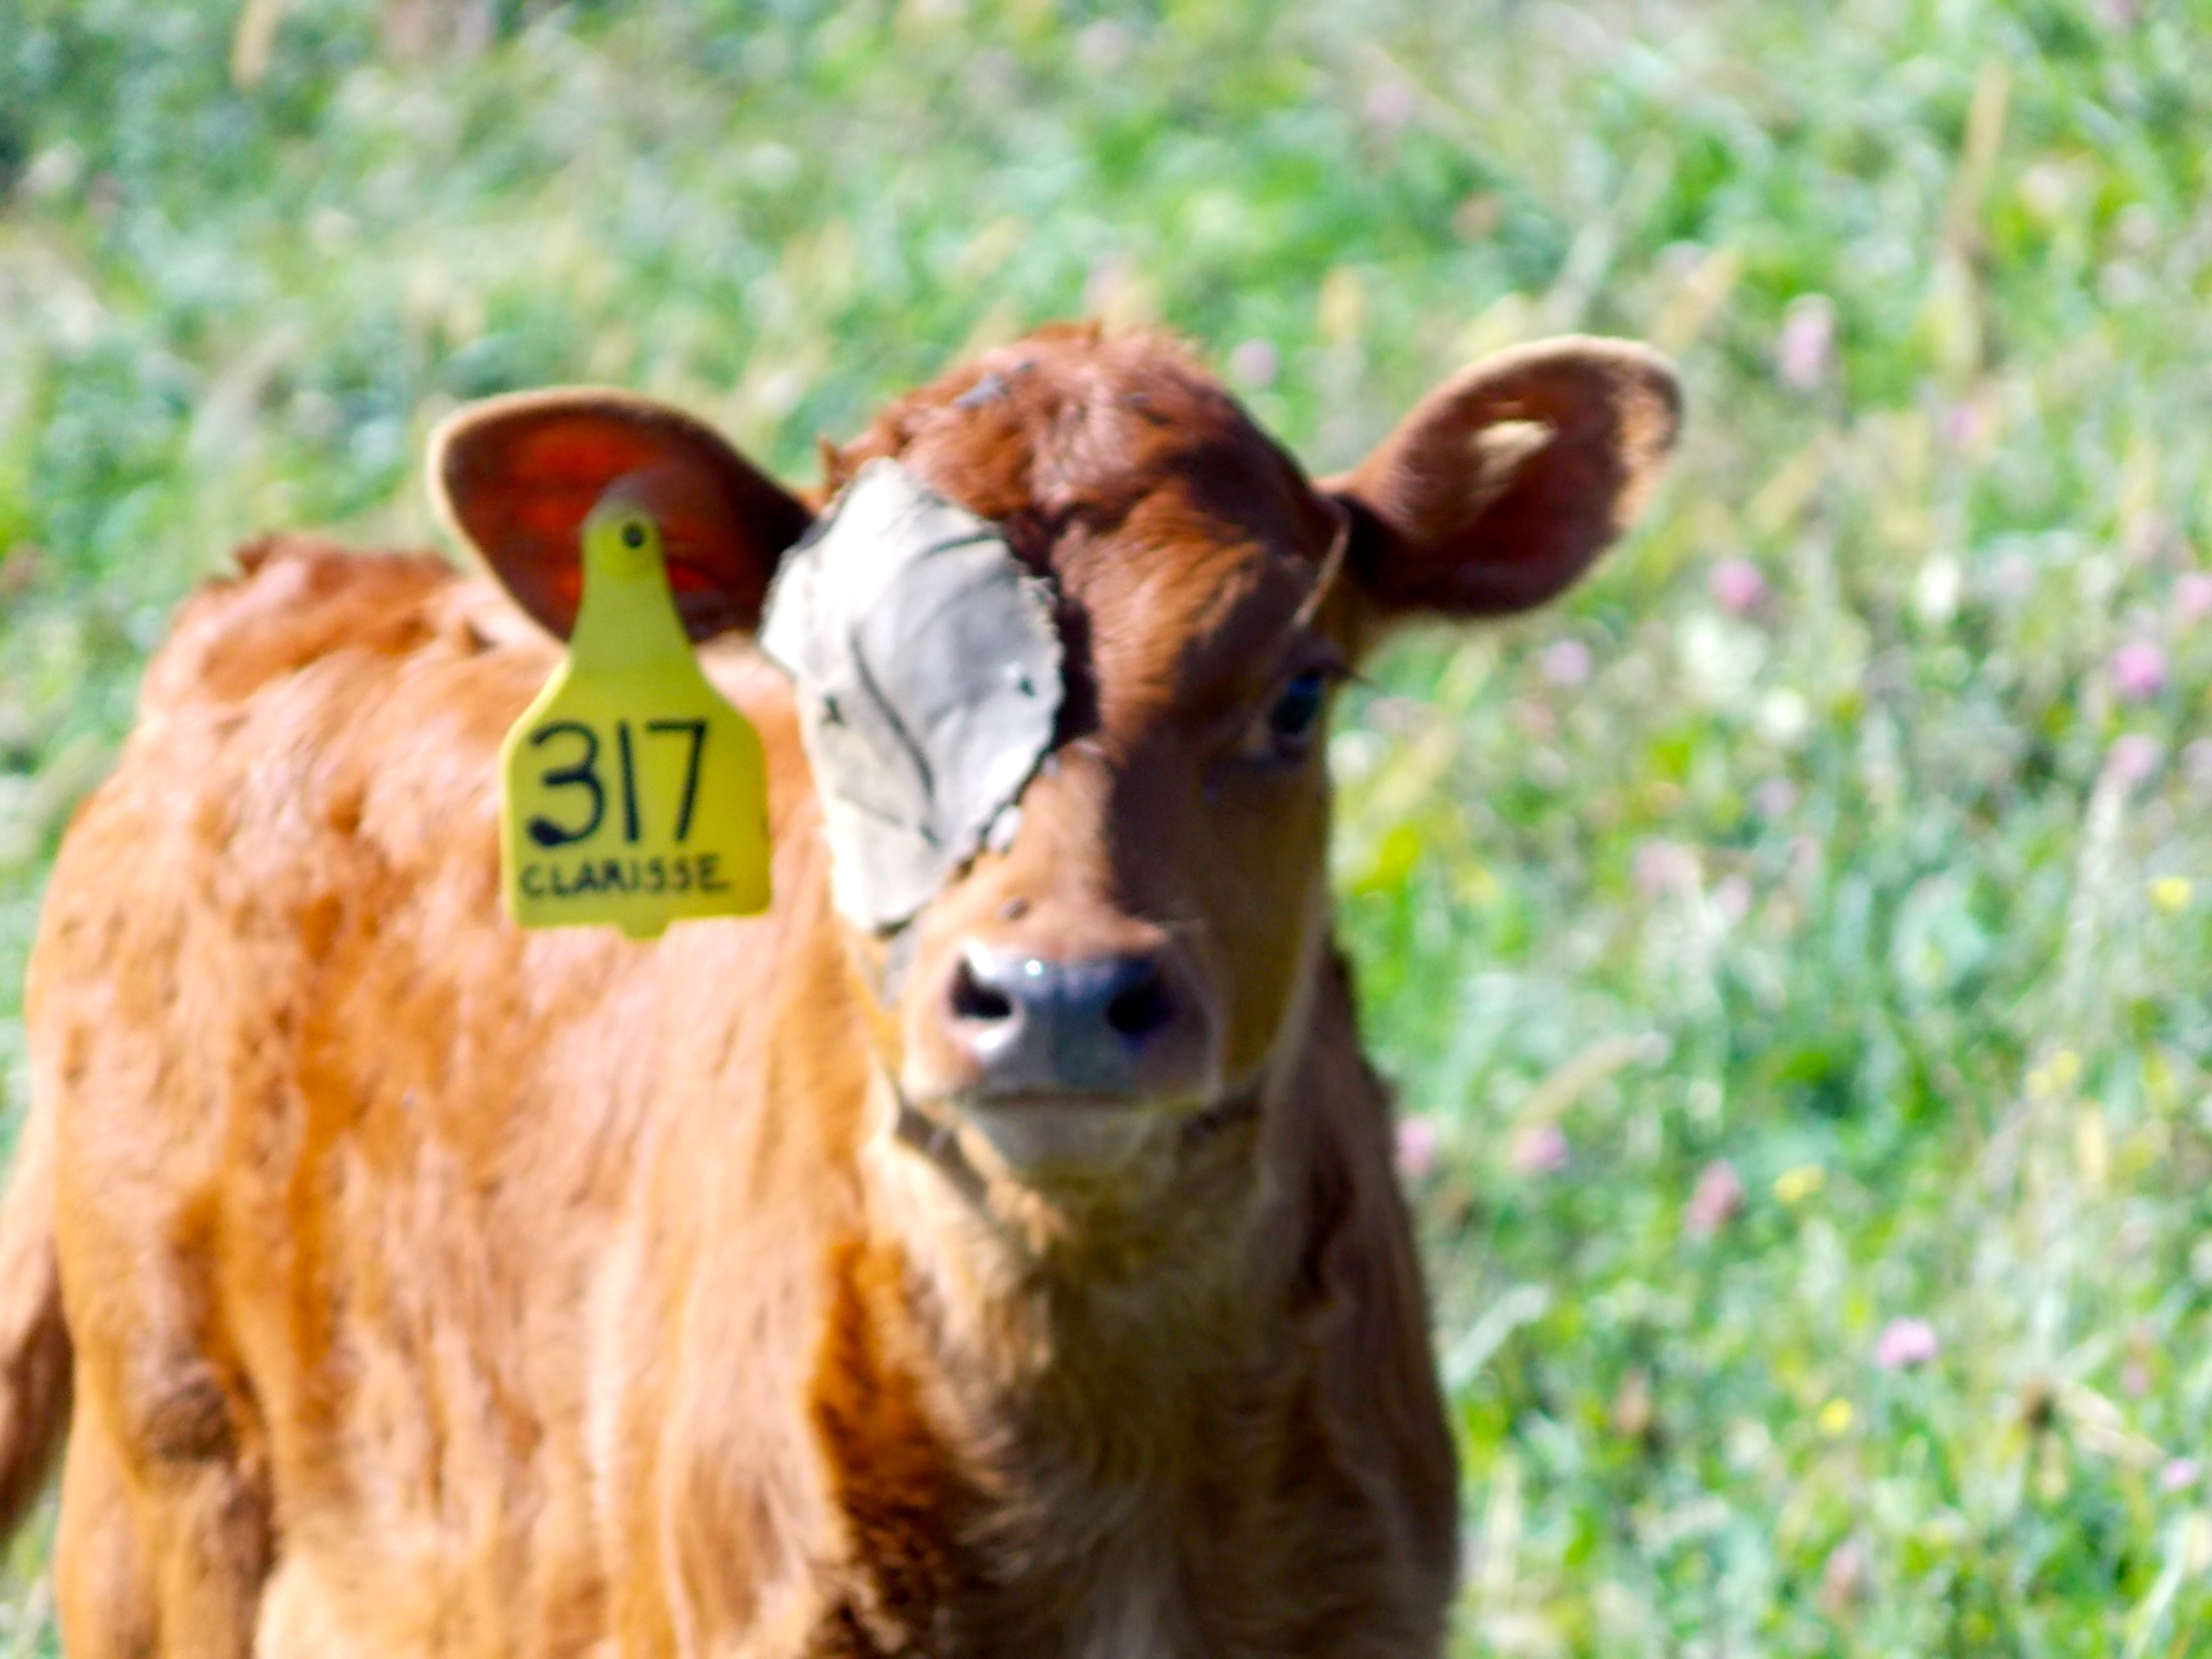 Treating Pinkeye in Calves